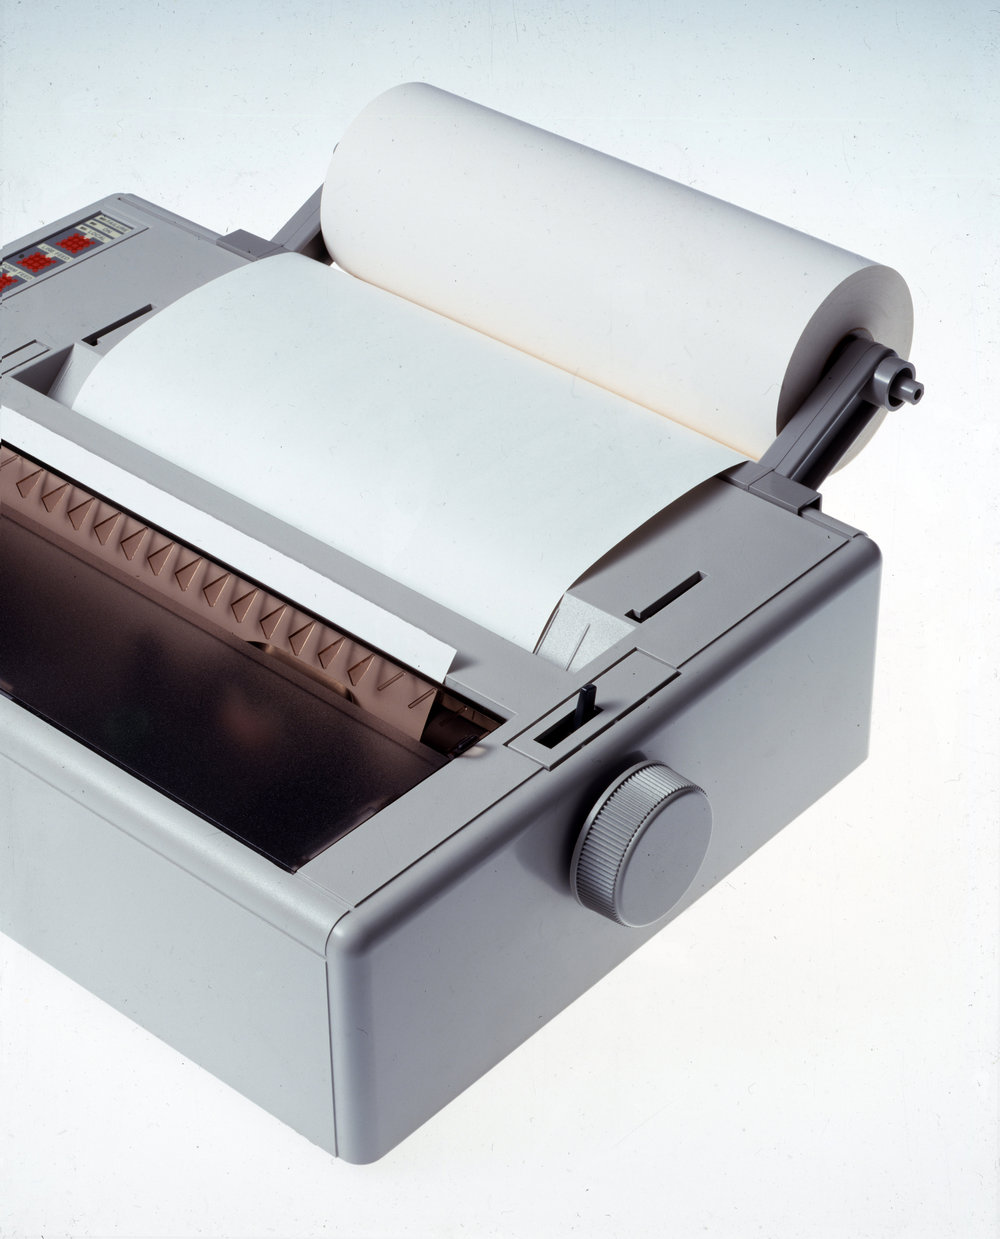 2Olivetti_Print_DM_Family_Photos (05).jpg